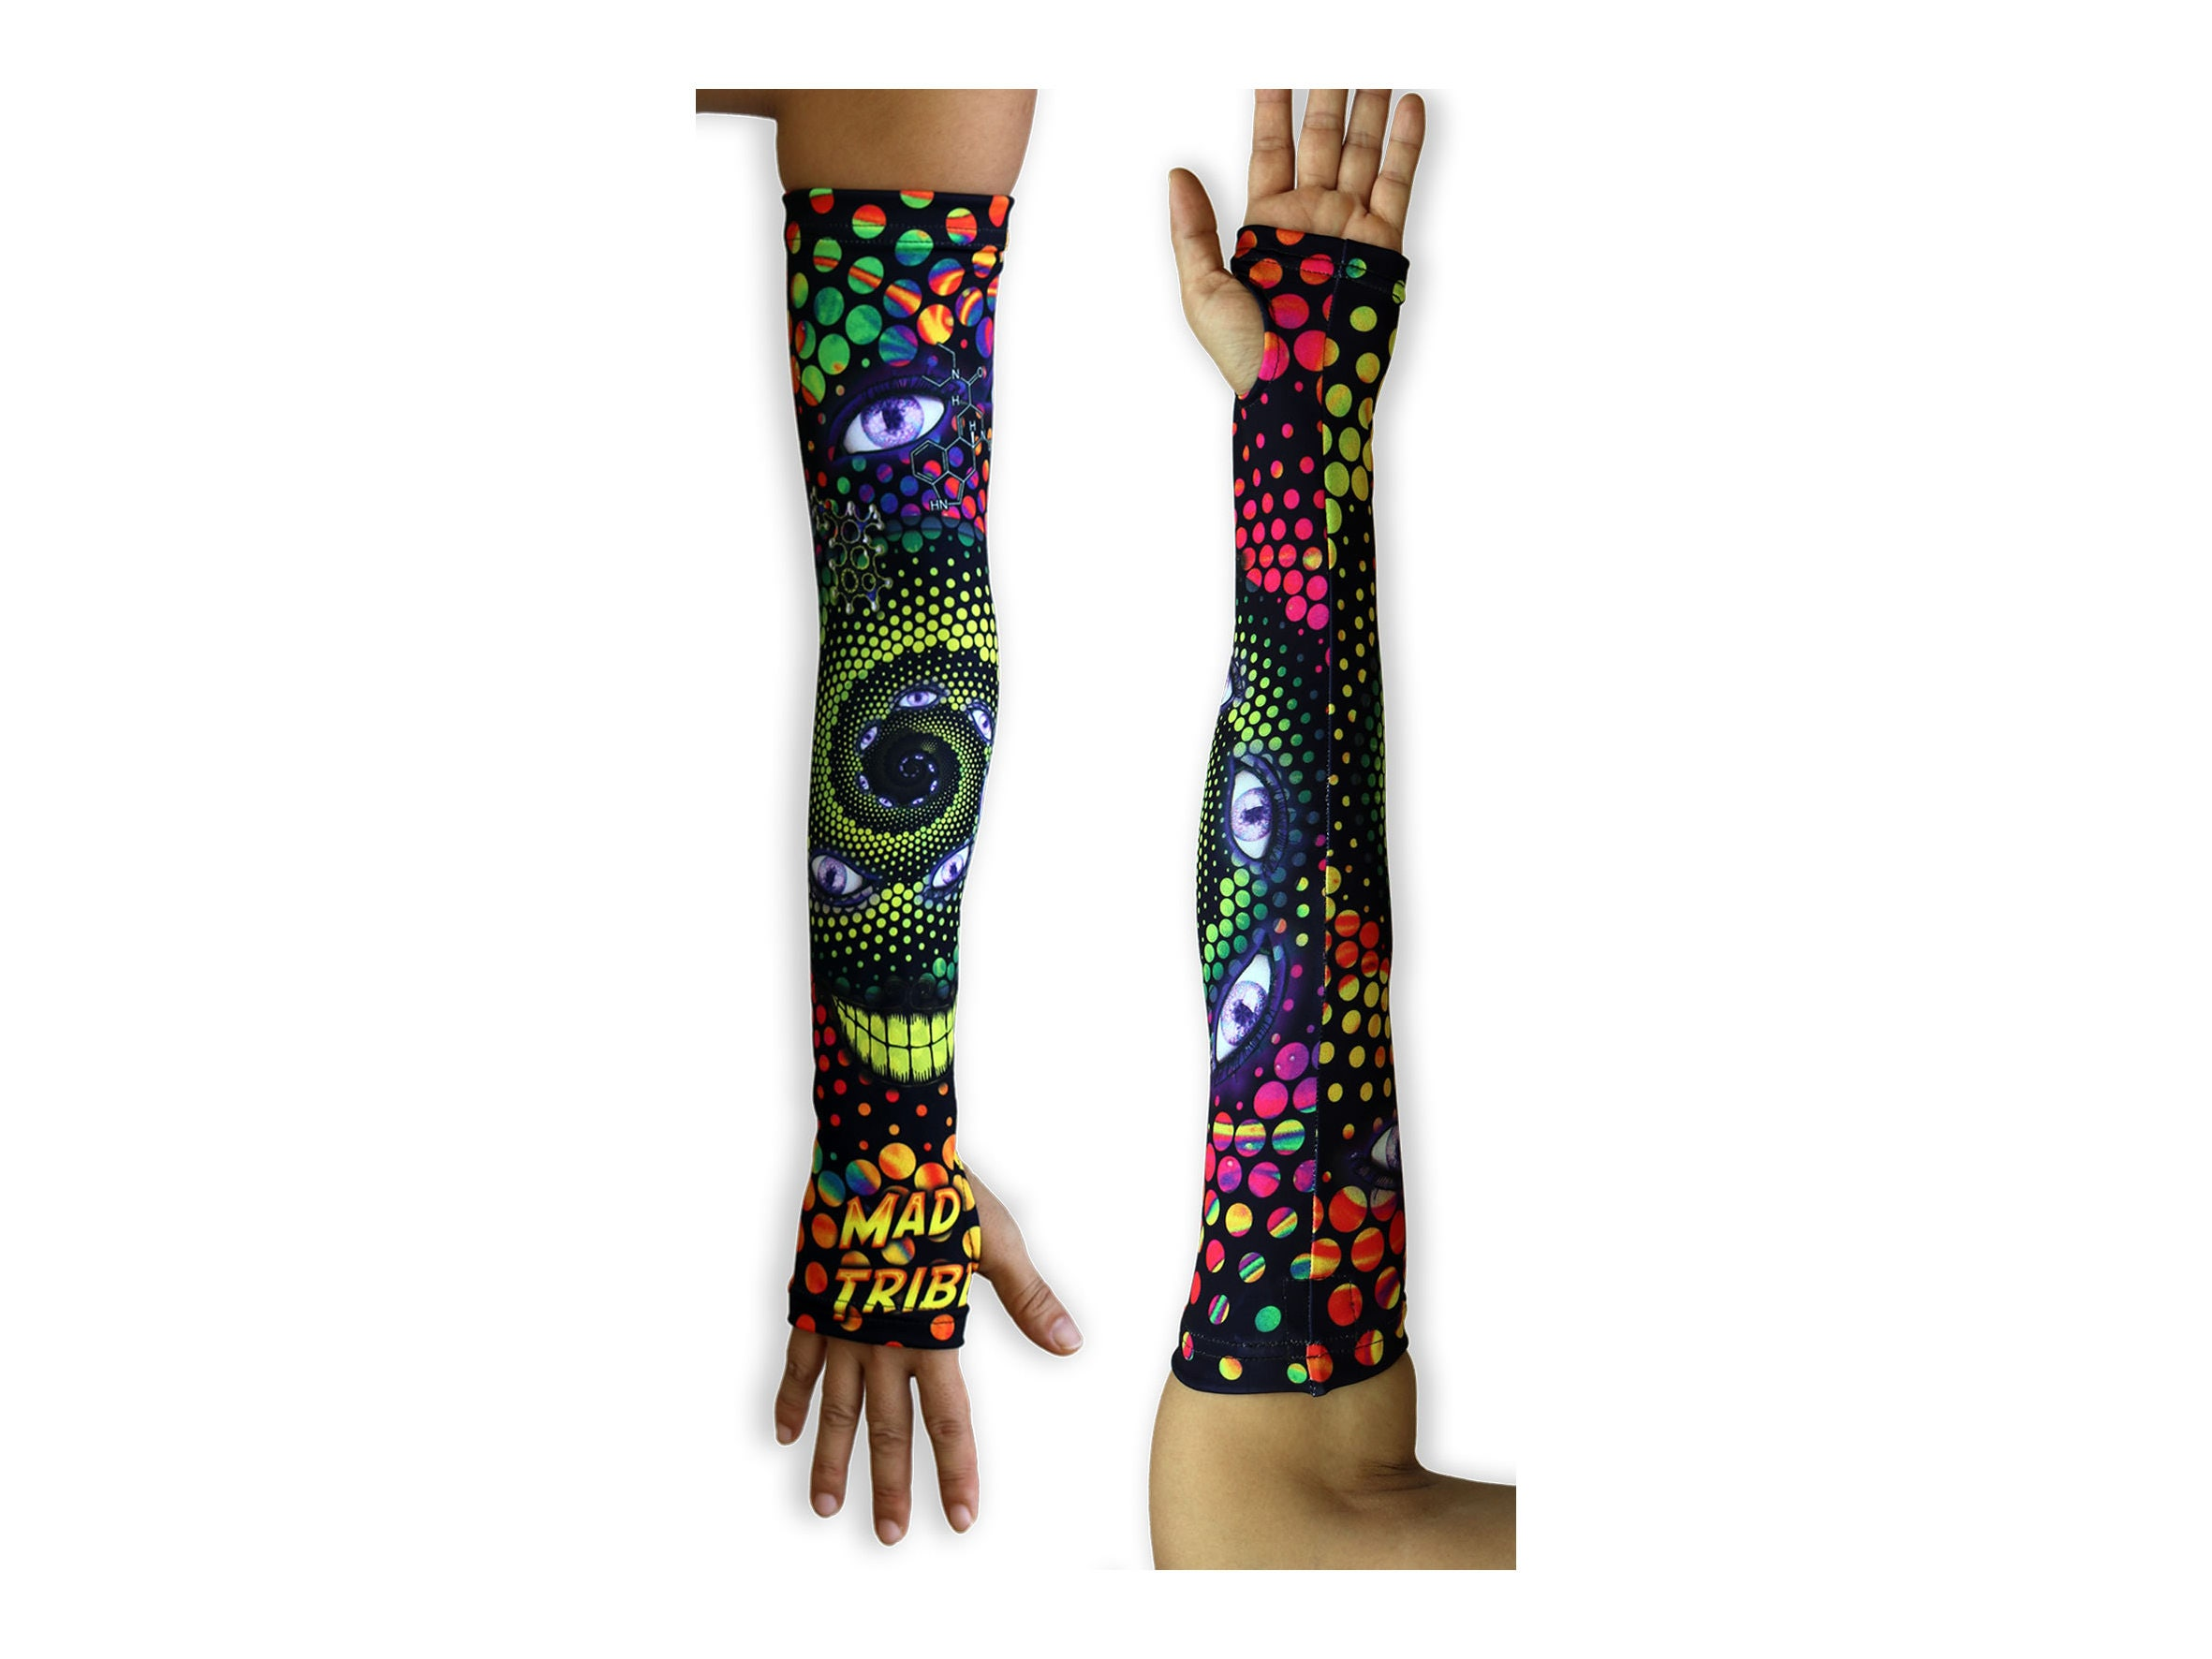 Arm sleeves LSD Party by Mad Tribe. 2 Trippy arm